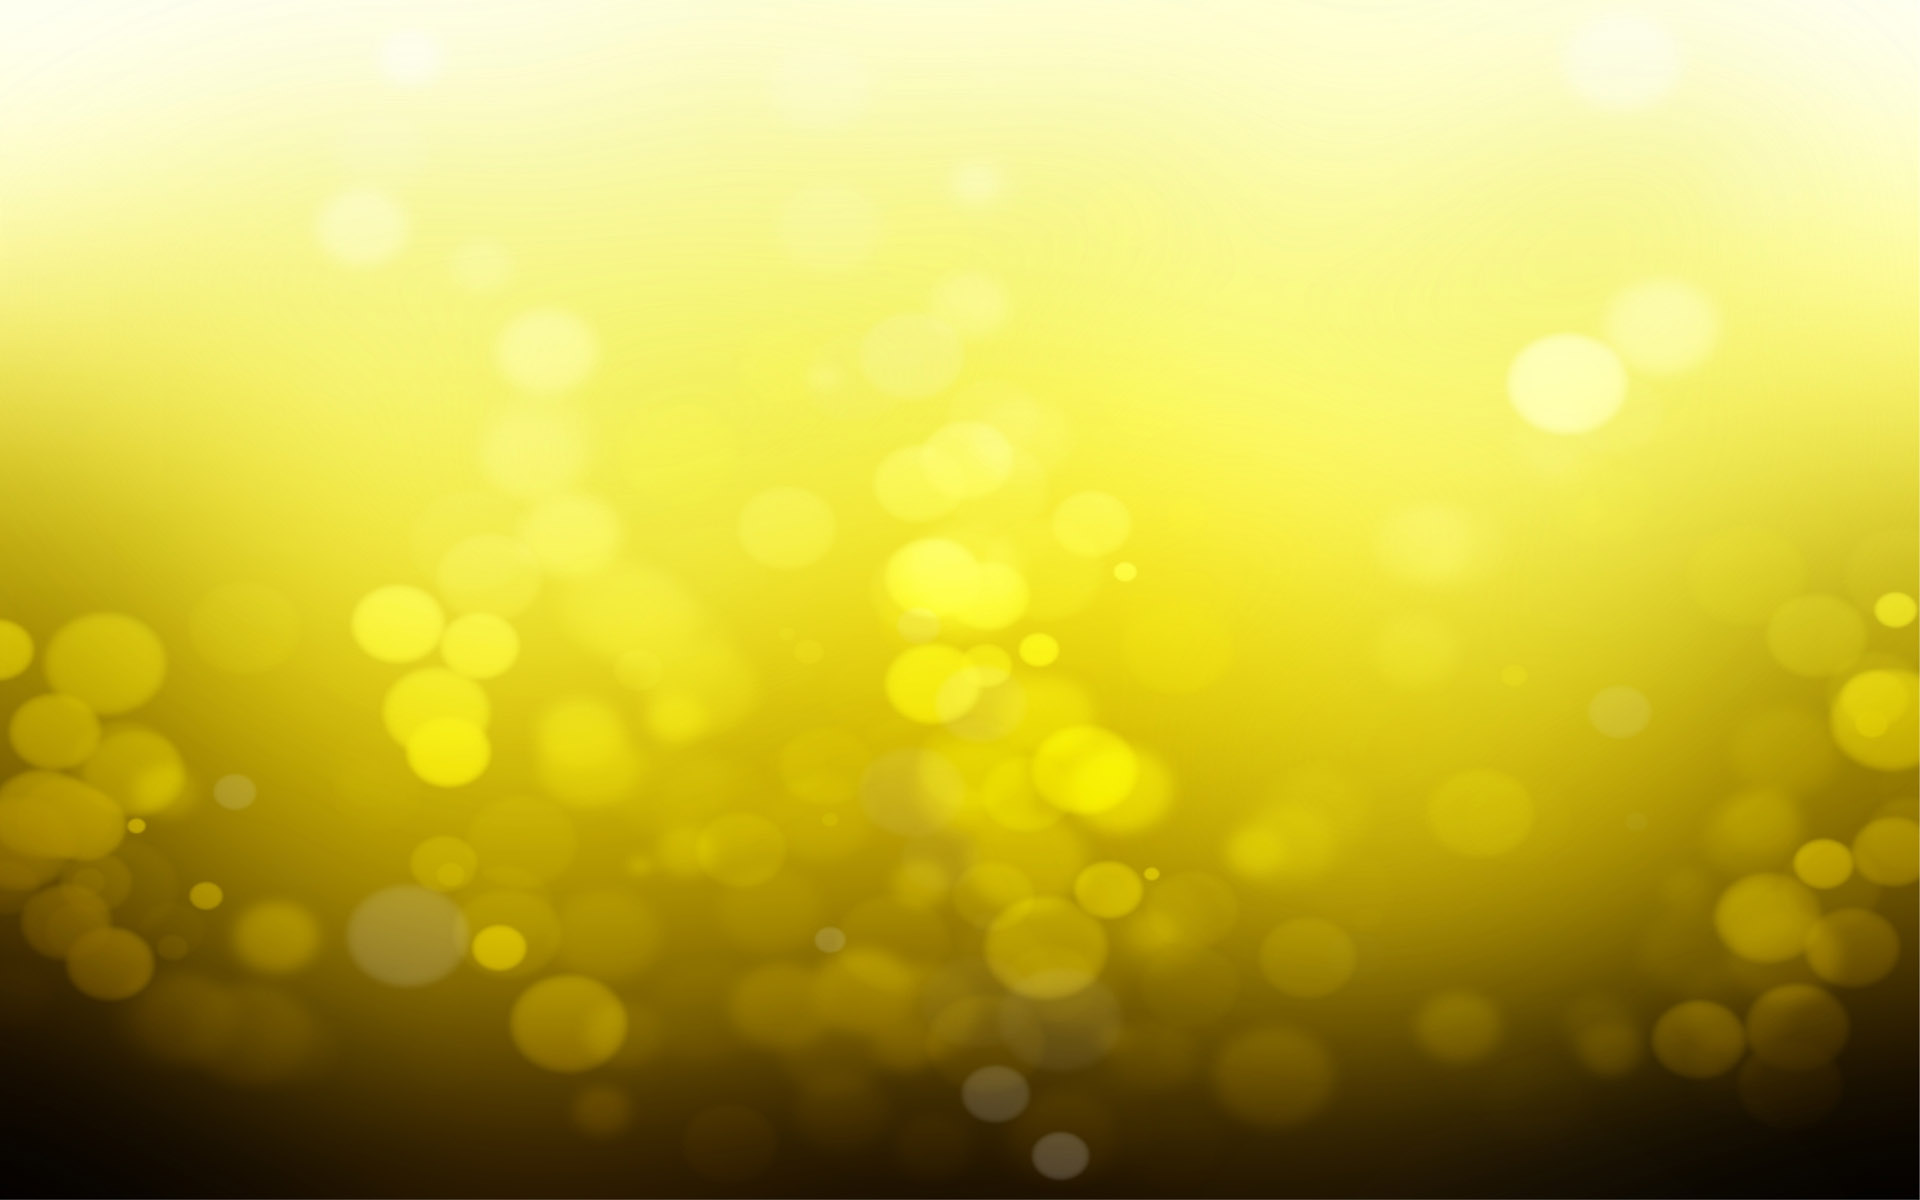 HD color background wallpaper 18282